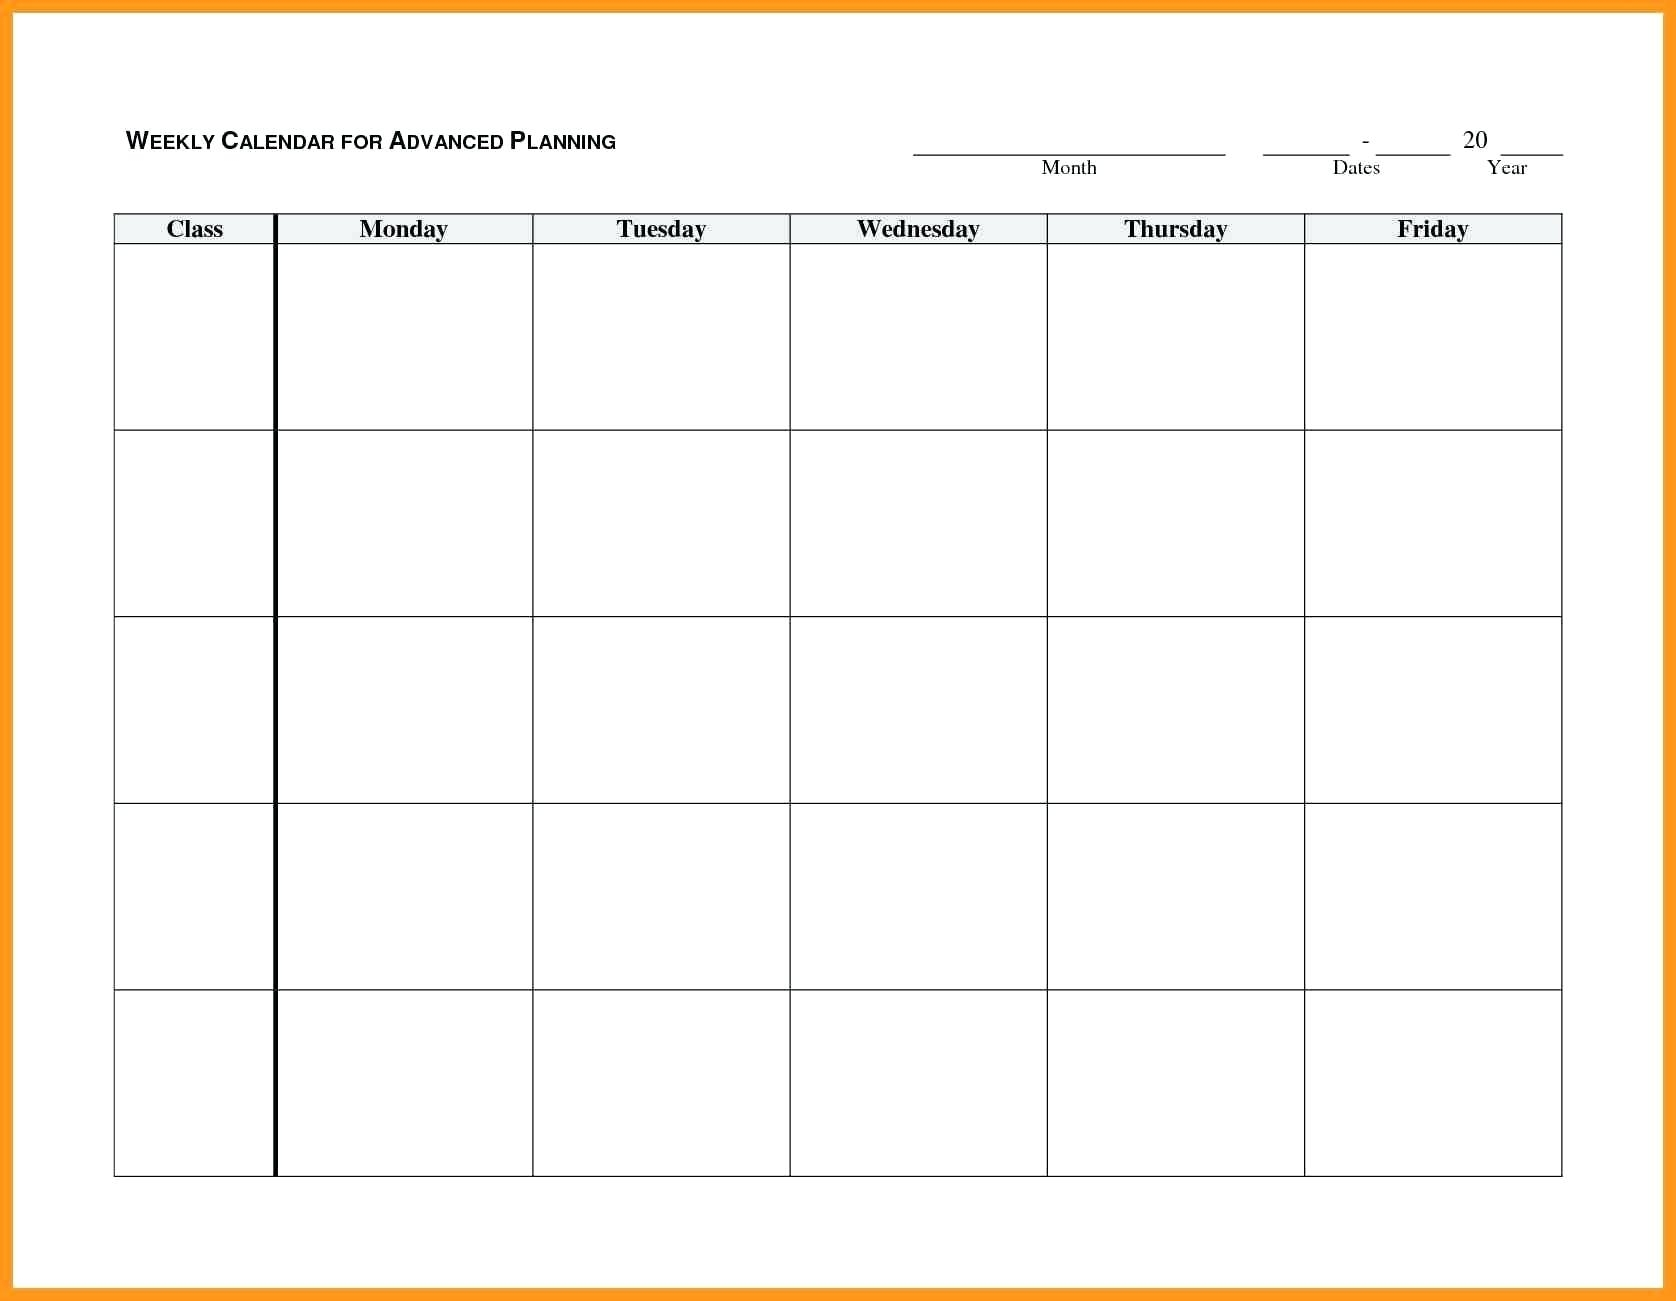 Blank Weekly Calendar Monday Through Friday Template Planner To | Smorad regarding Printable Monday Through Friday Calendar Template